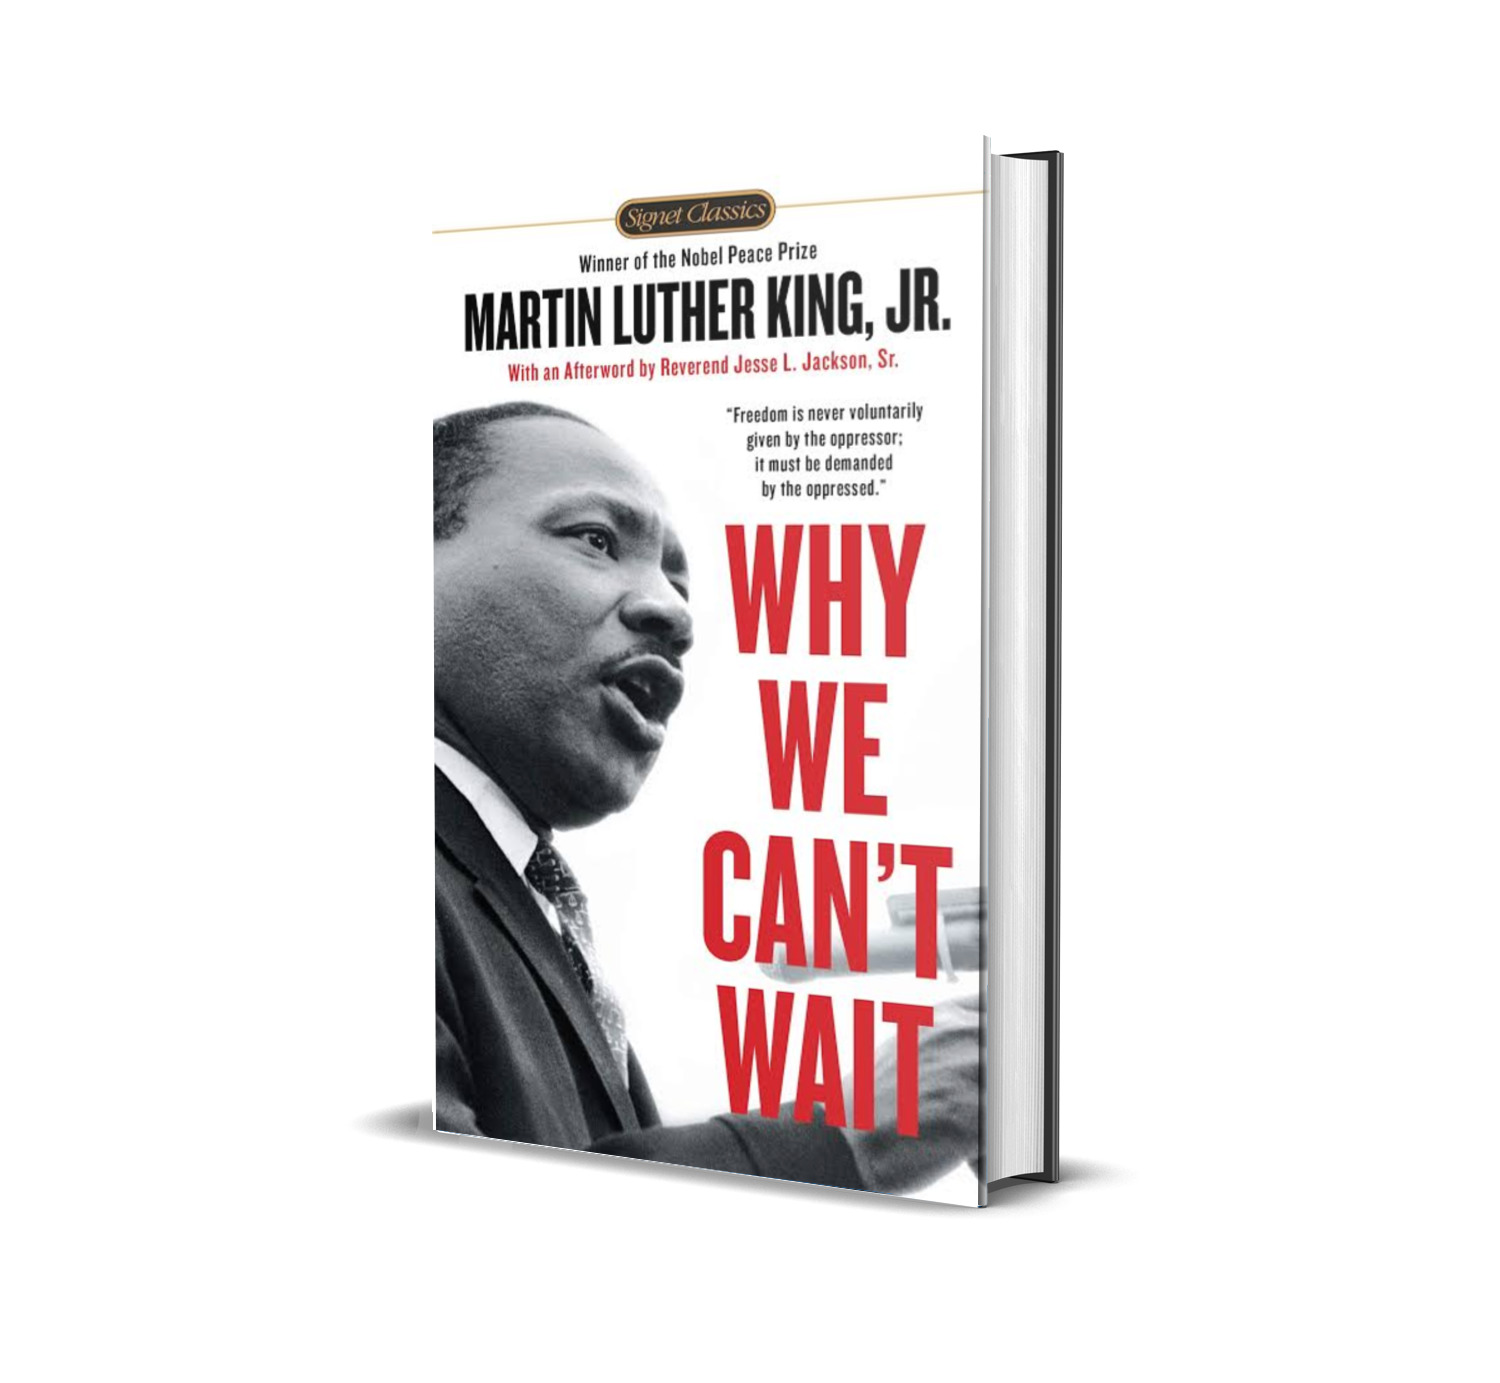 Why we can't wait- Martin Luther King Jr